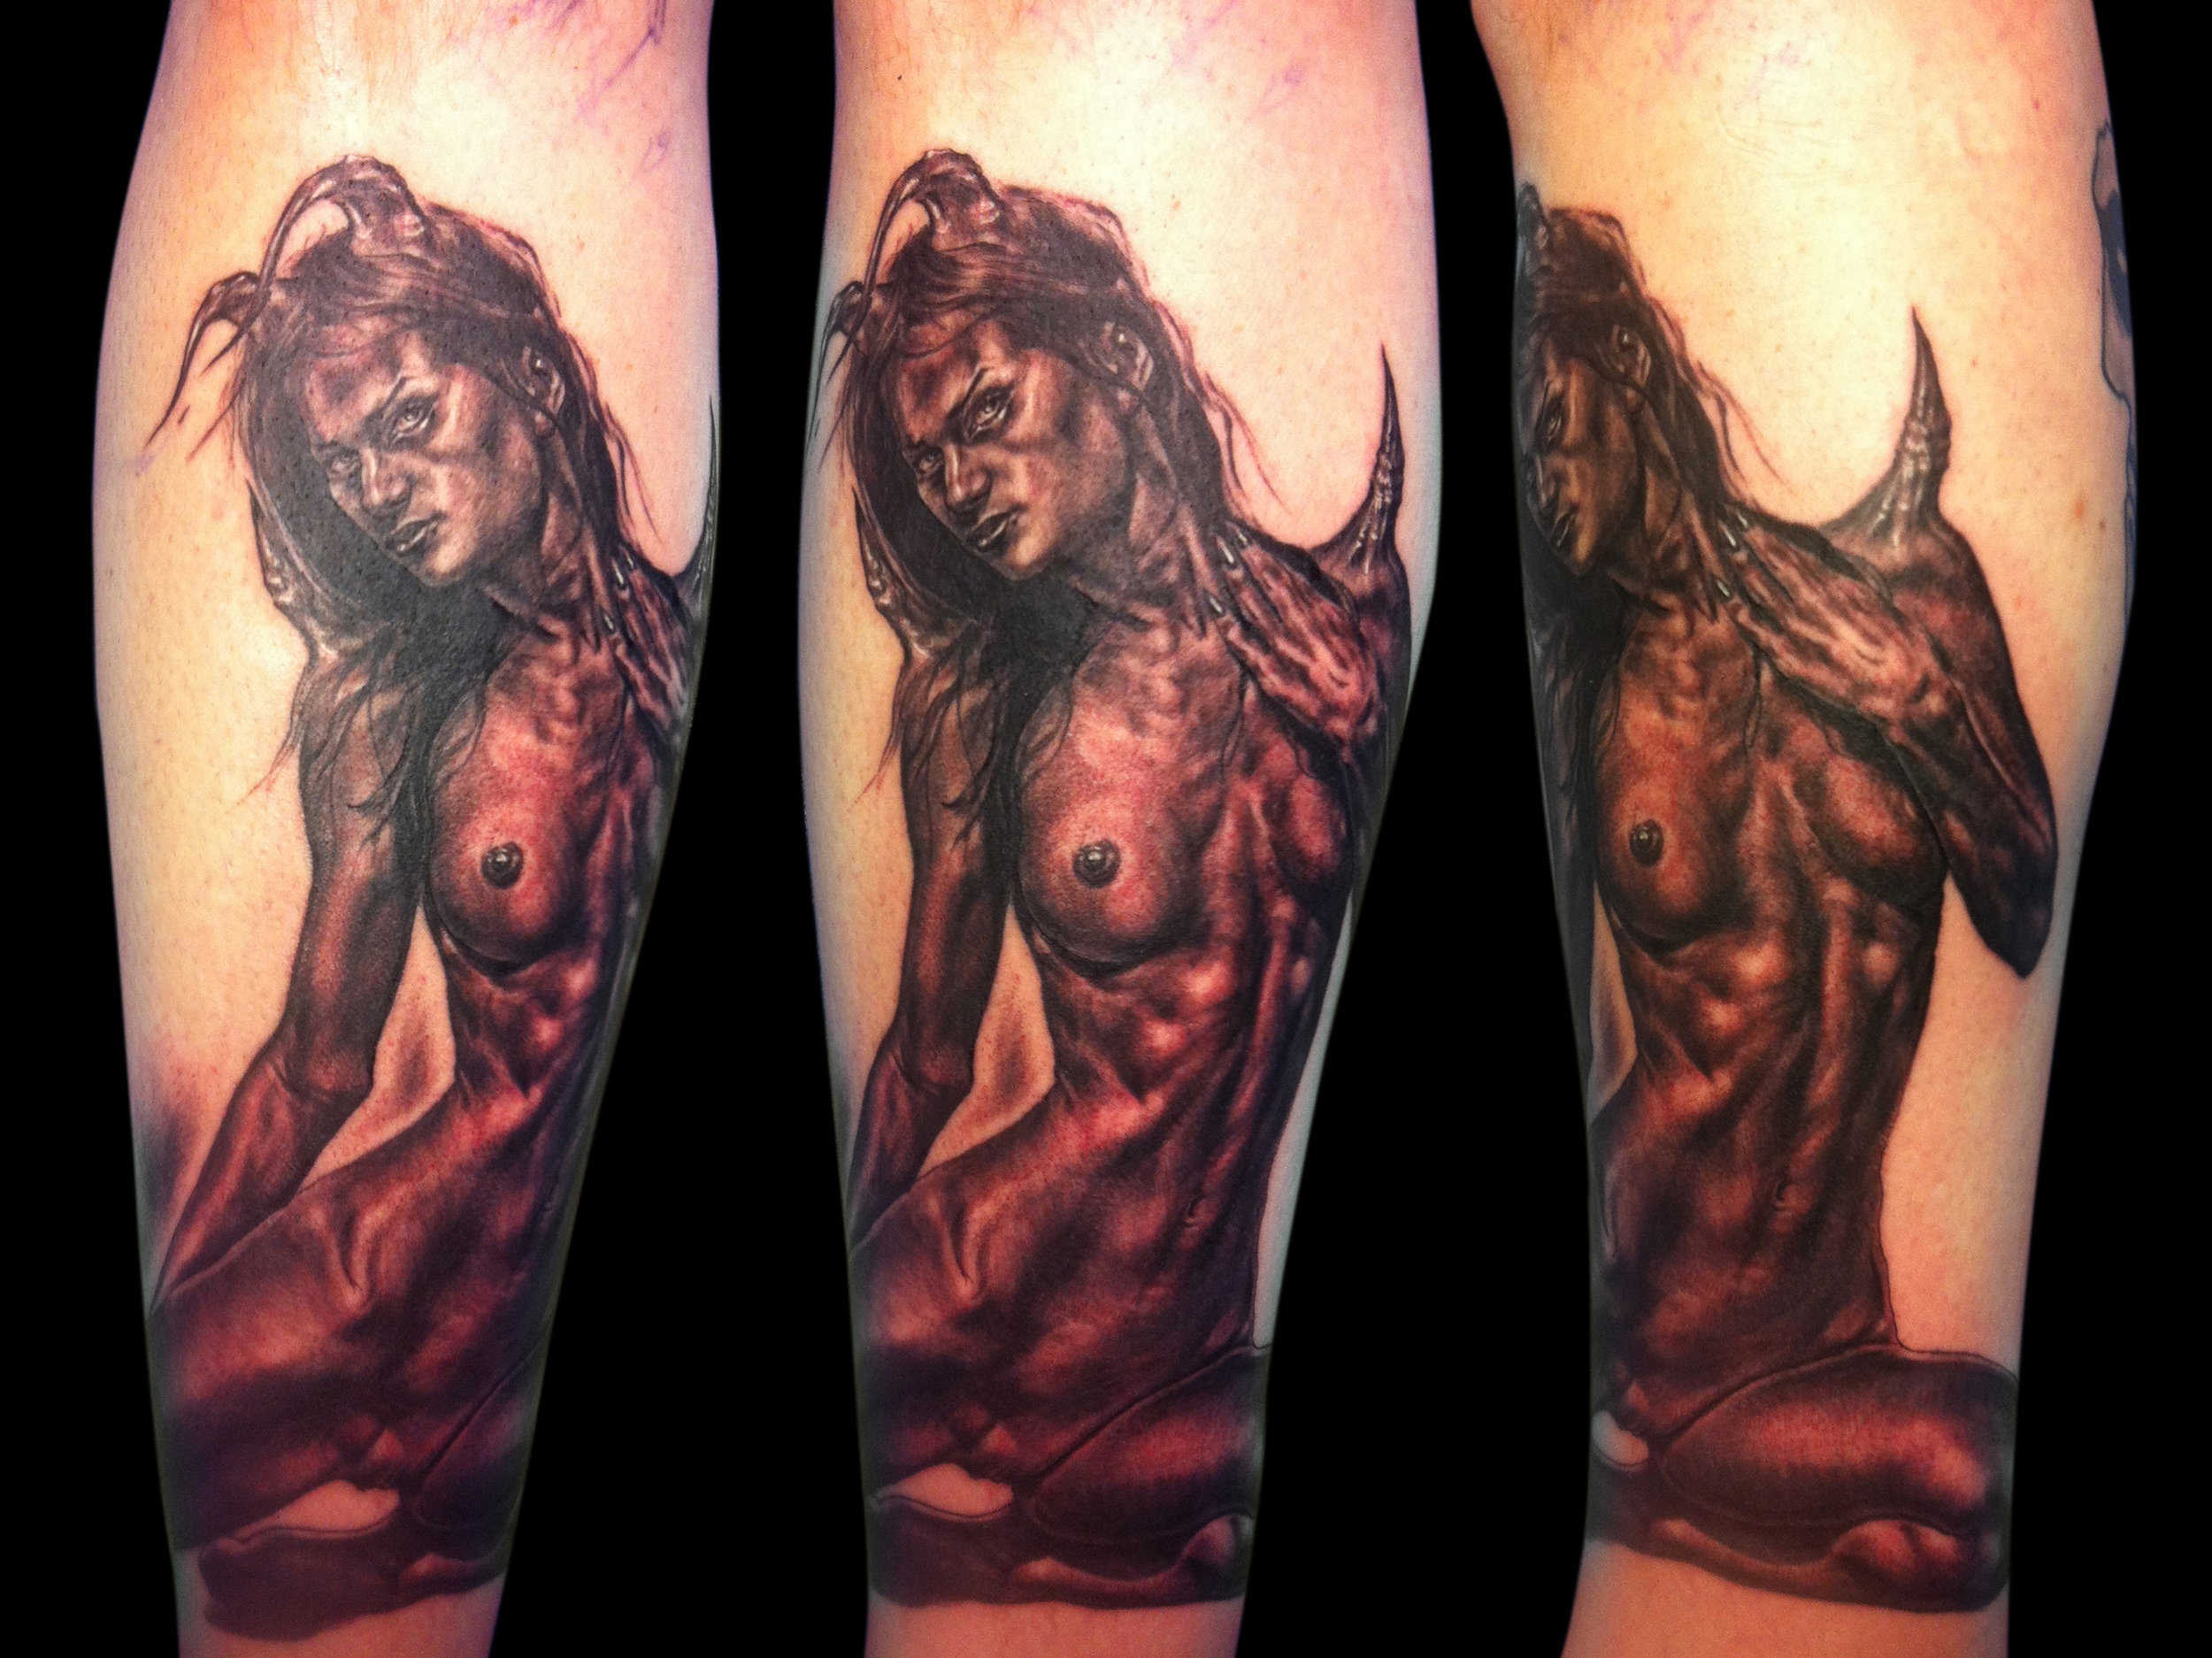 Black and Grey Nude Female Demon Tattoo, (fresh) multi angle